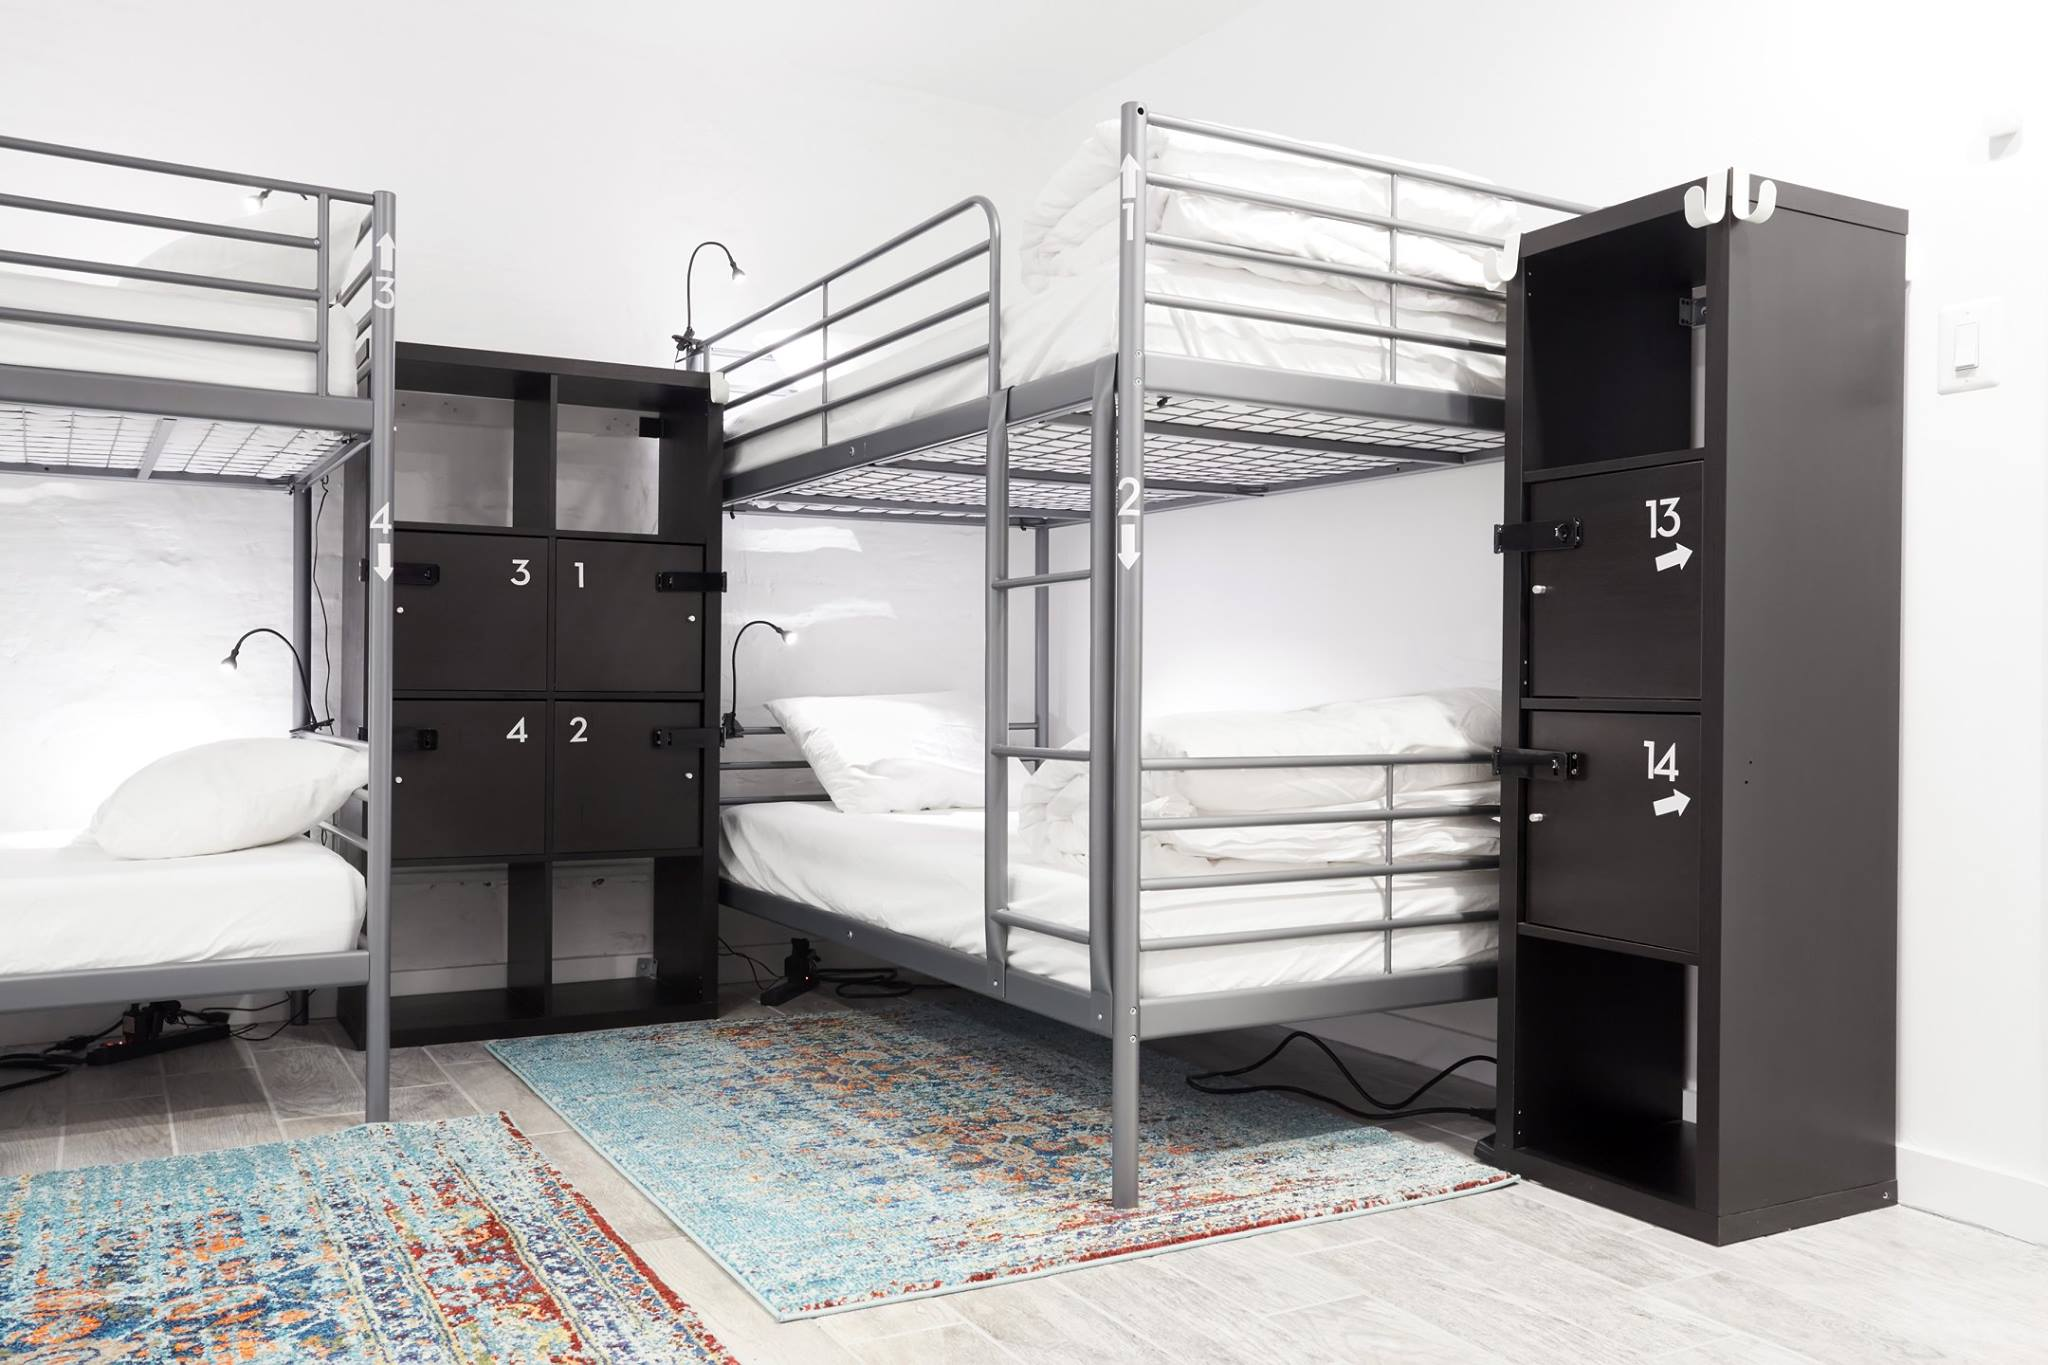 Bunk beds and lockers in backpackers dorm room